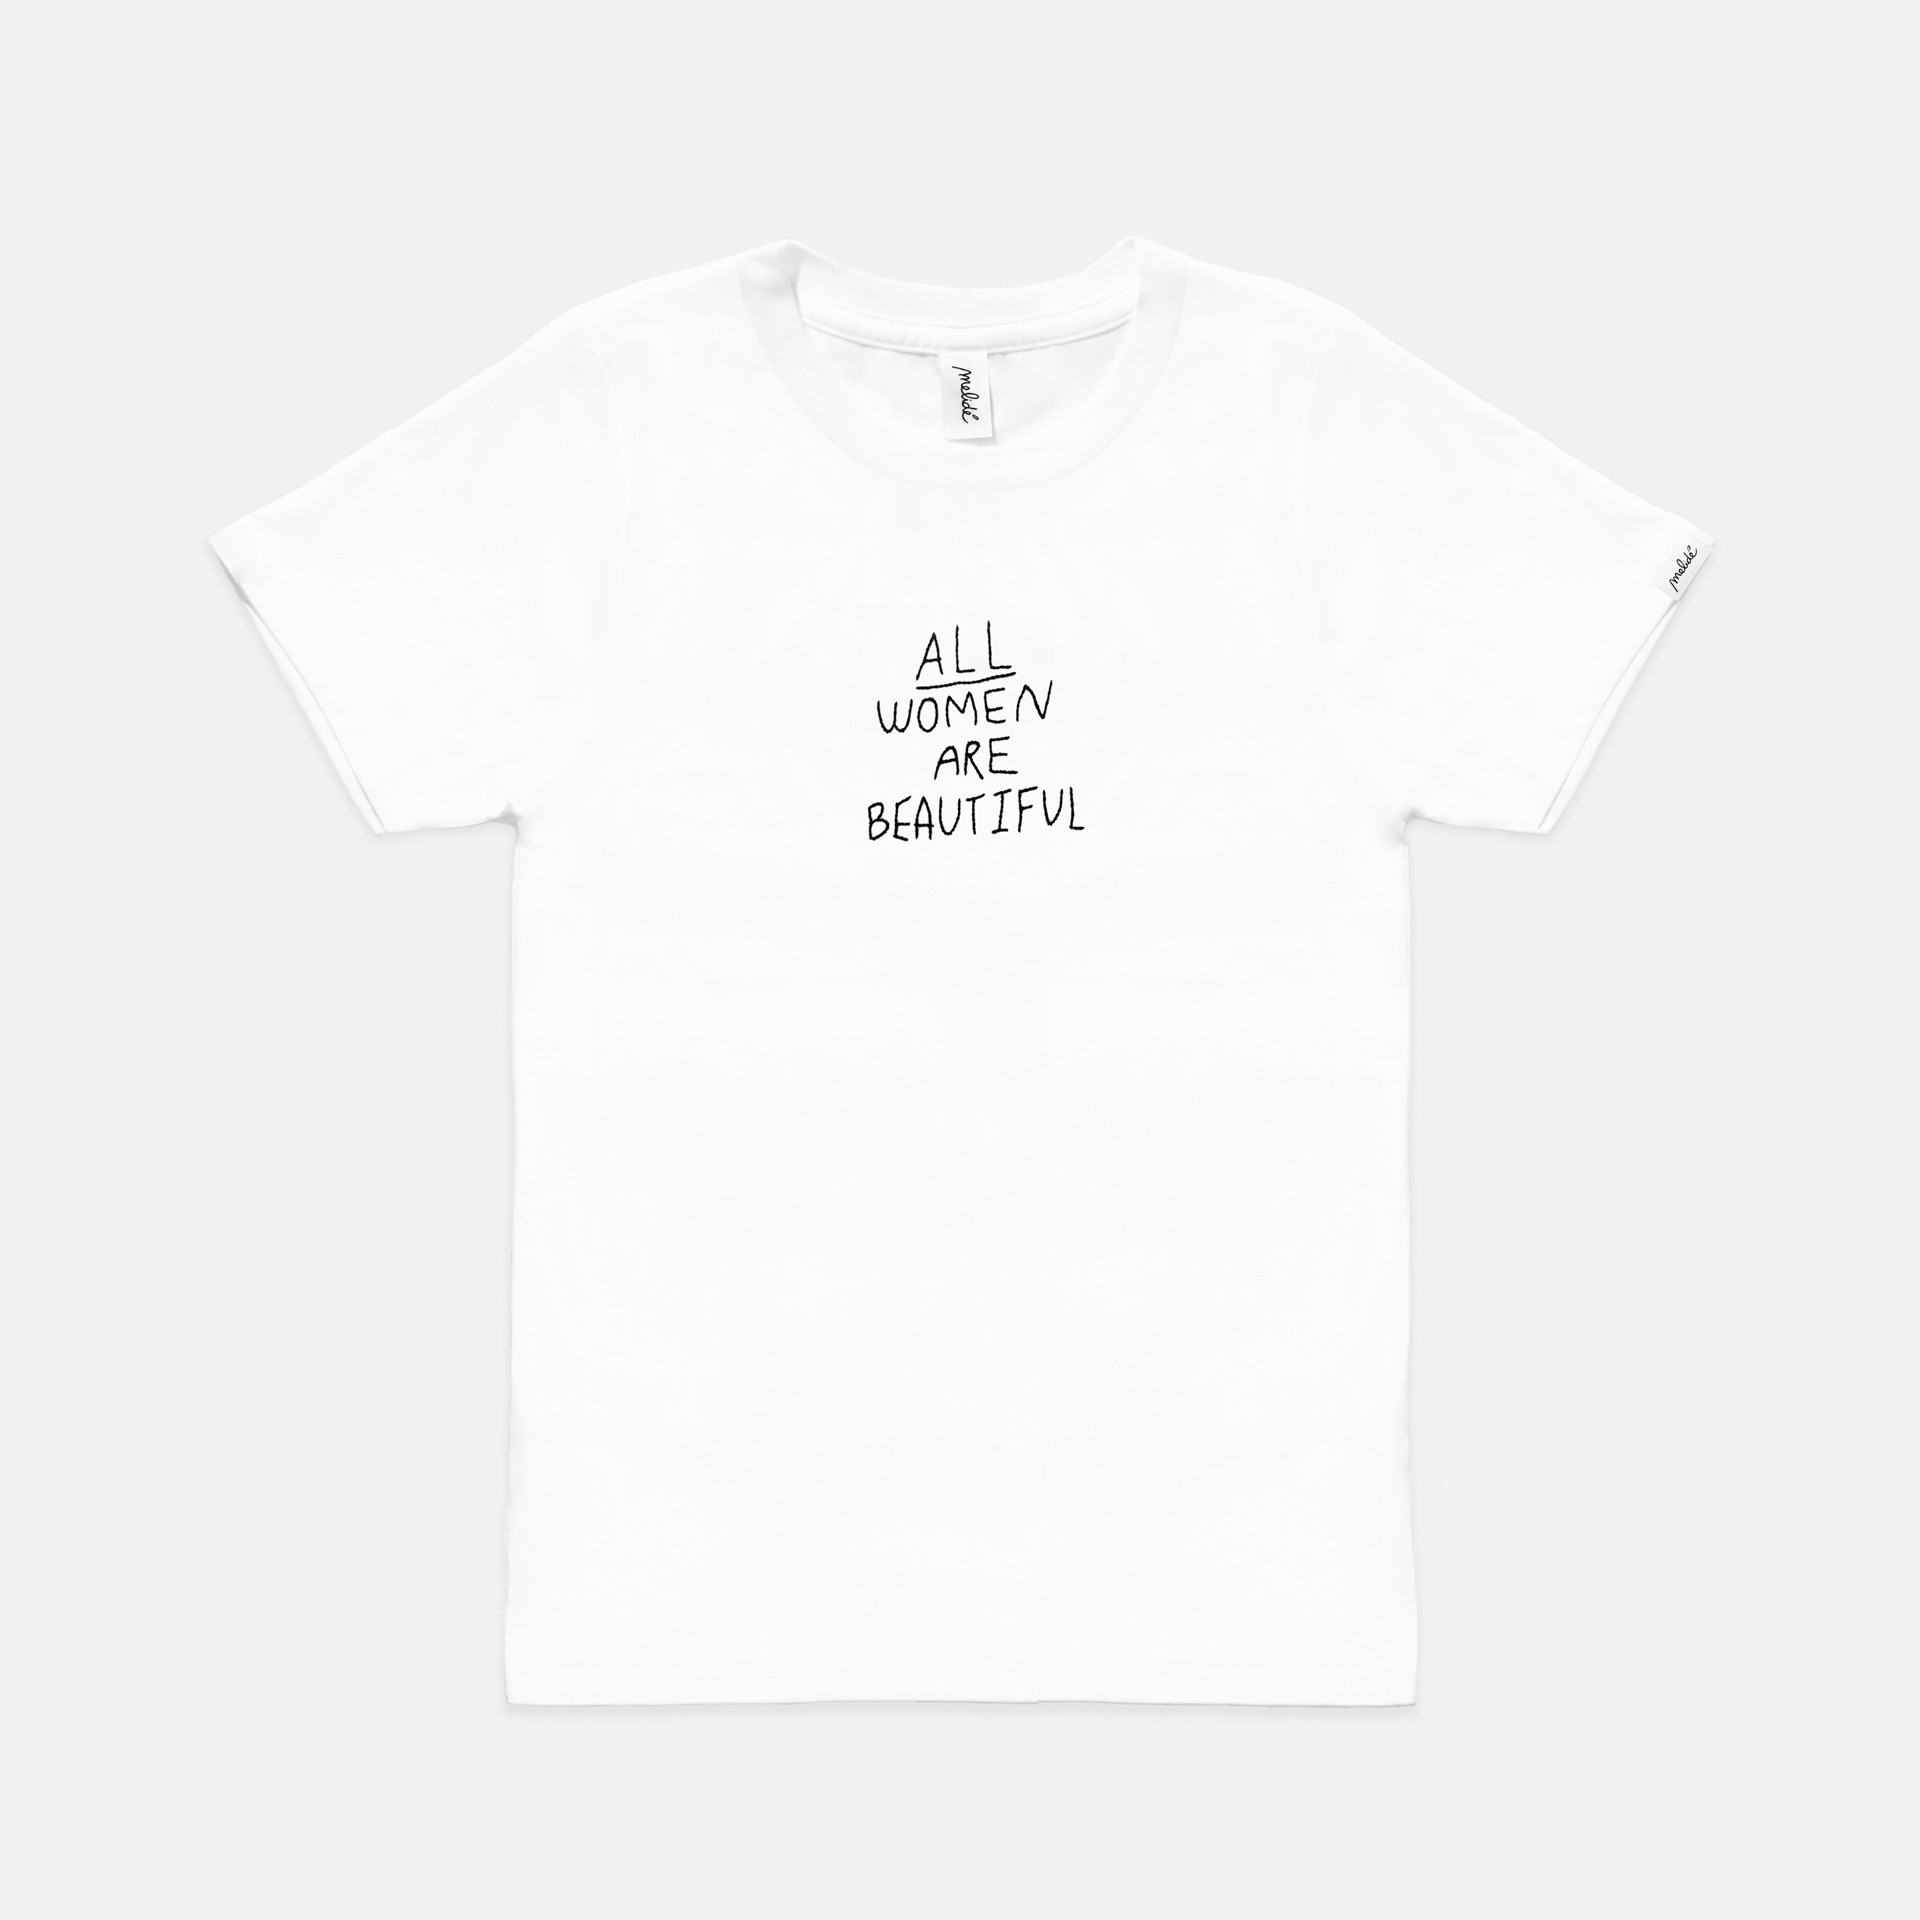 The ALL WOMEN ARE BEAUTIFUL tee